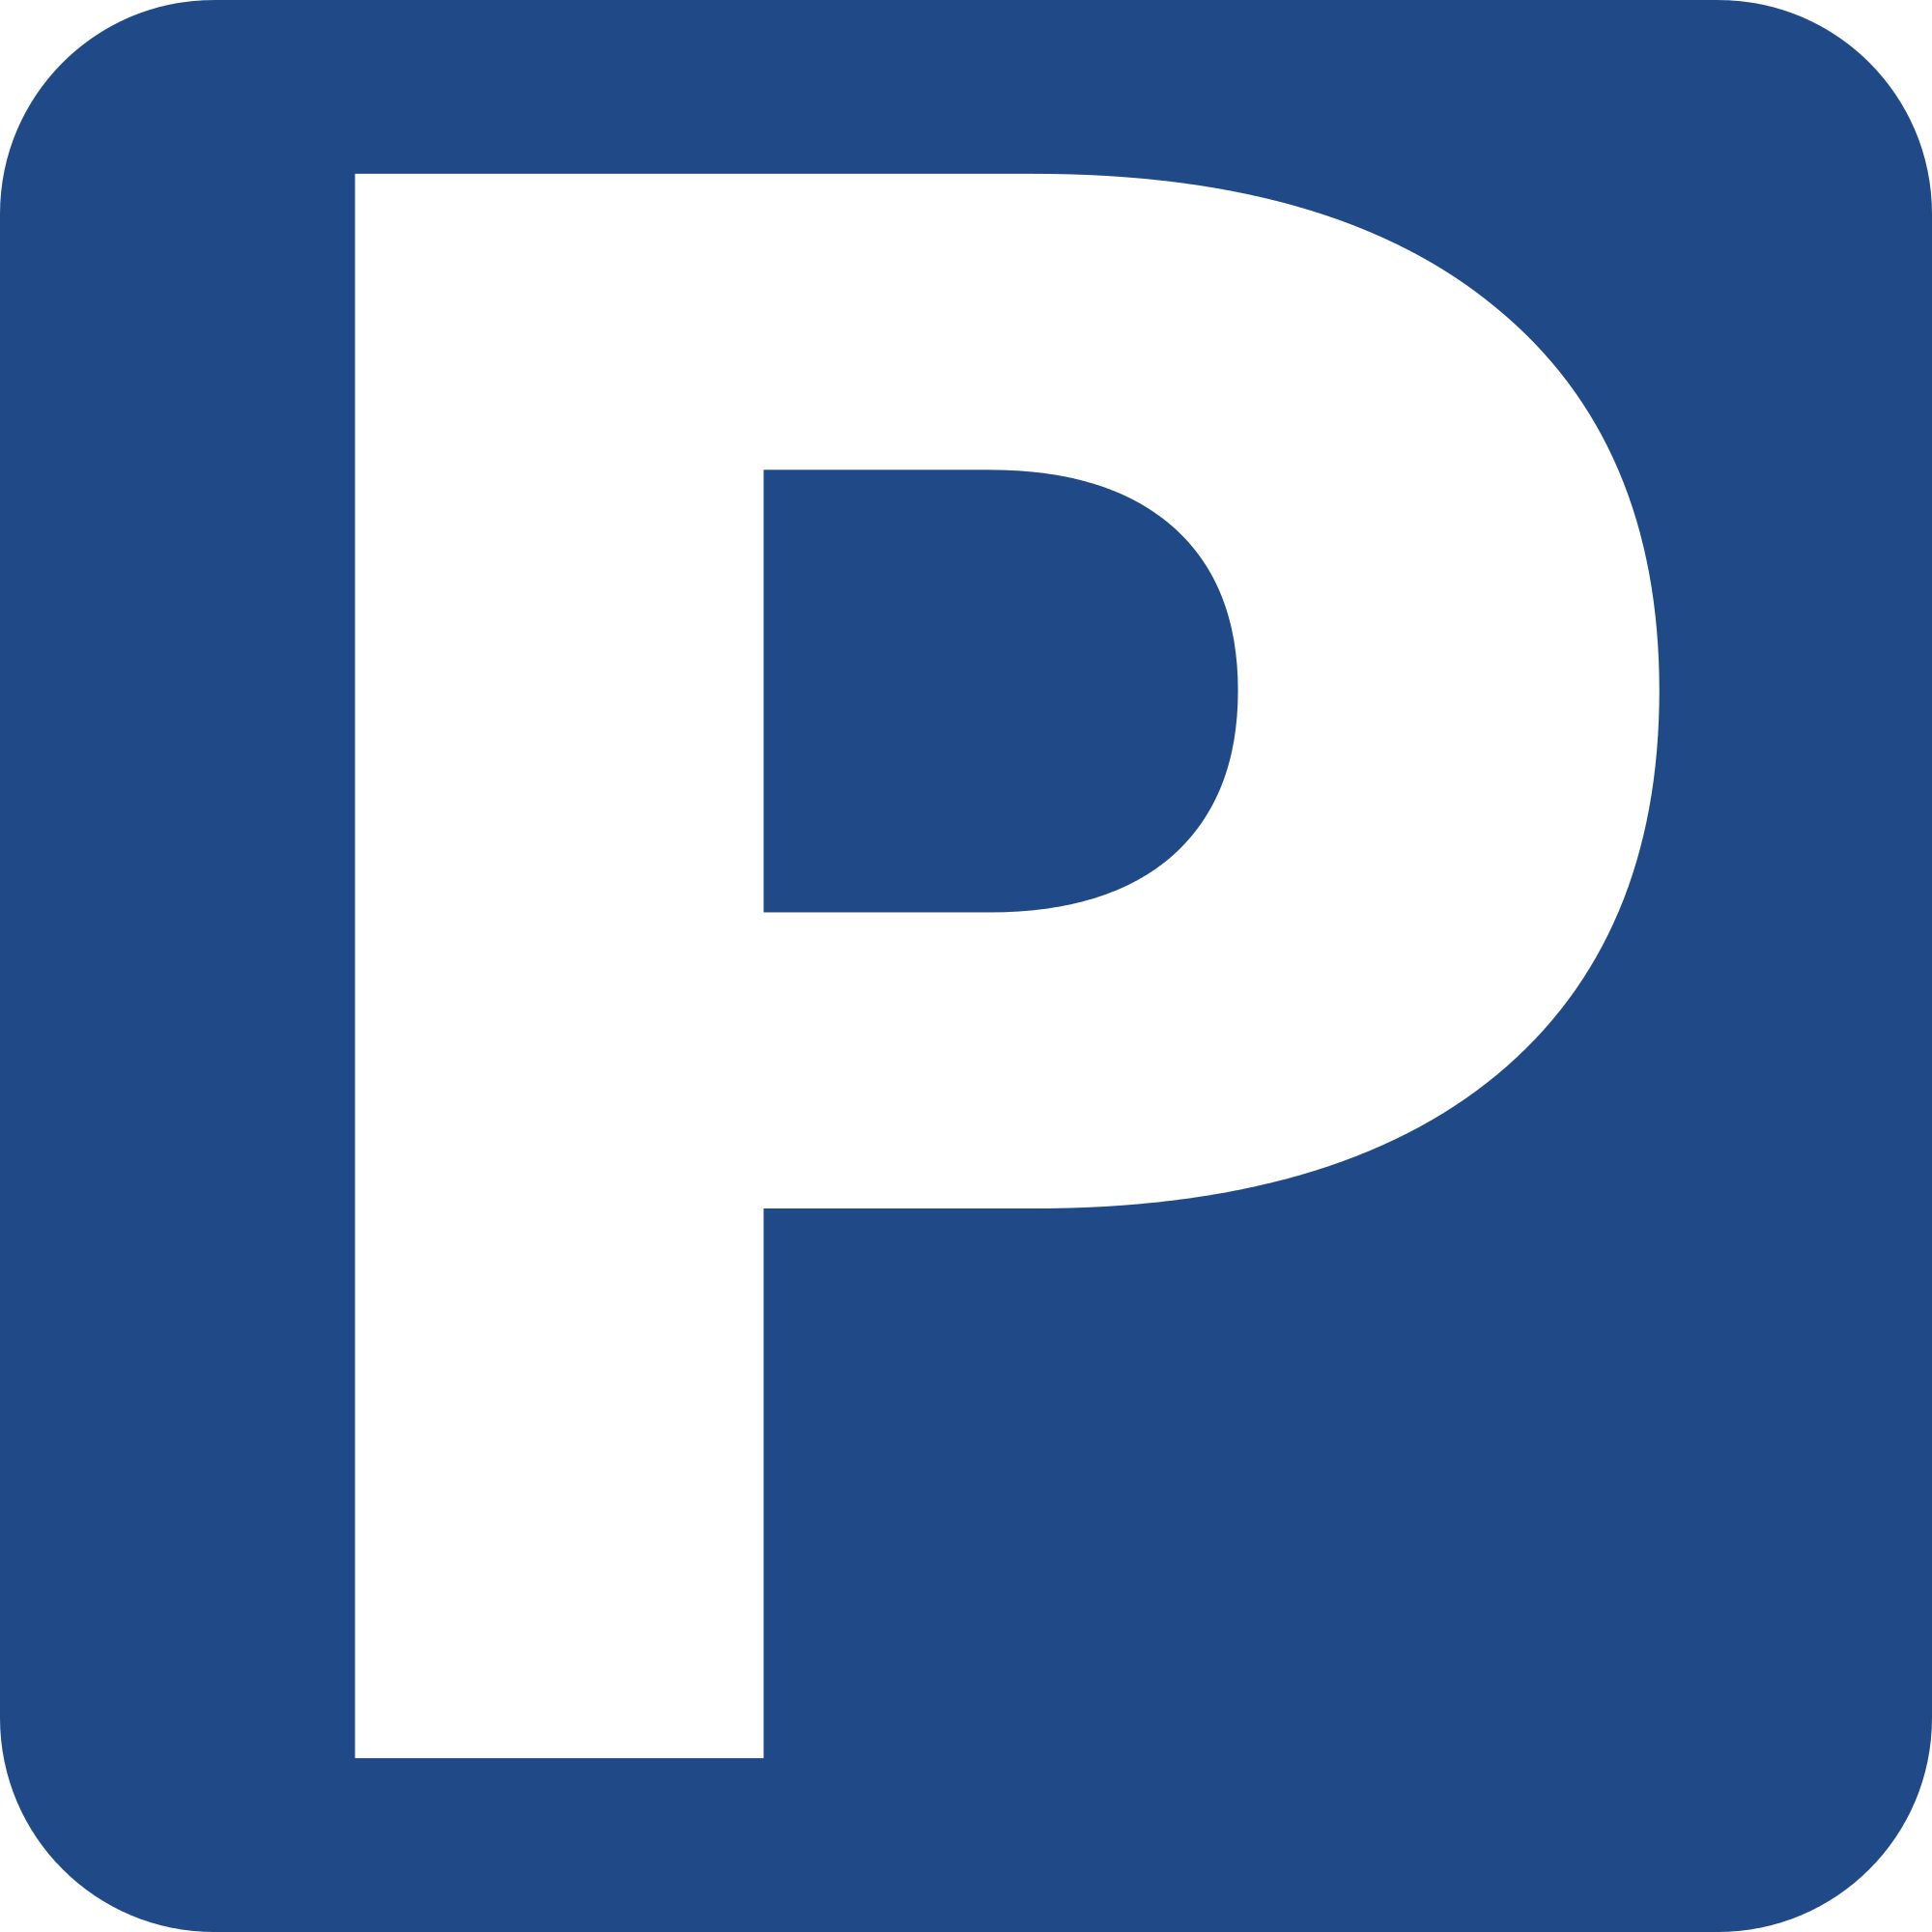 File:Parking icon.svg - Wikimedia Commons